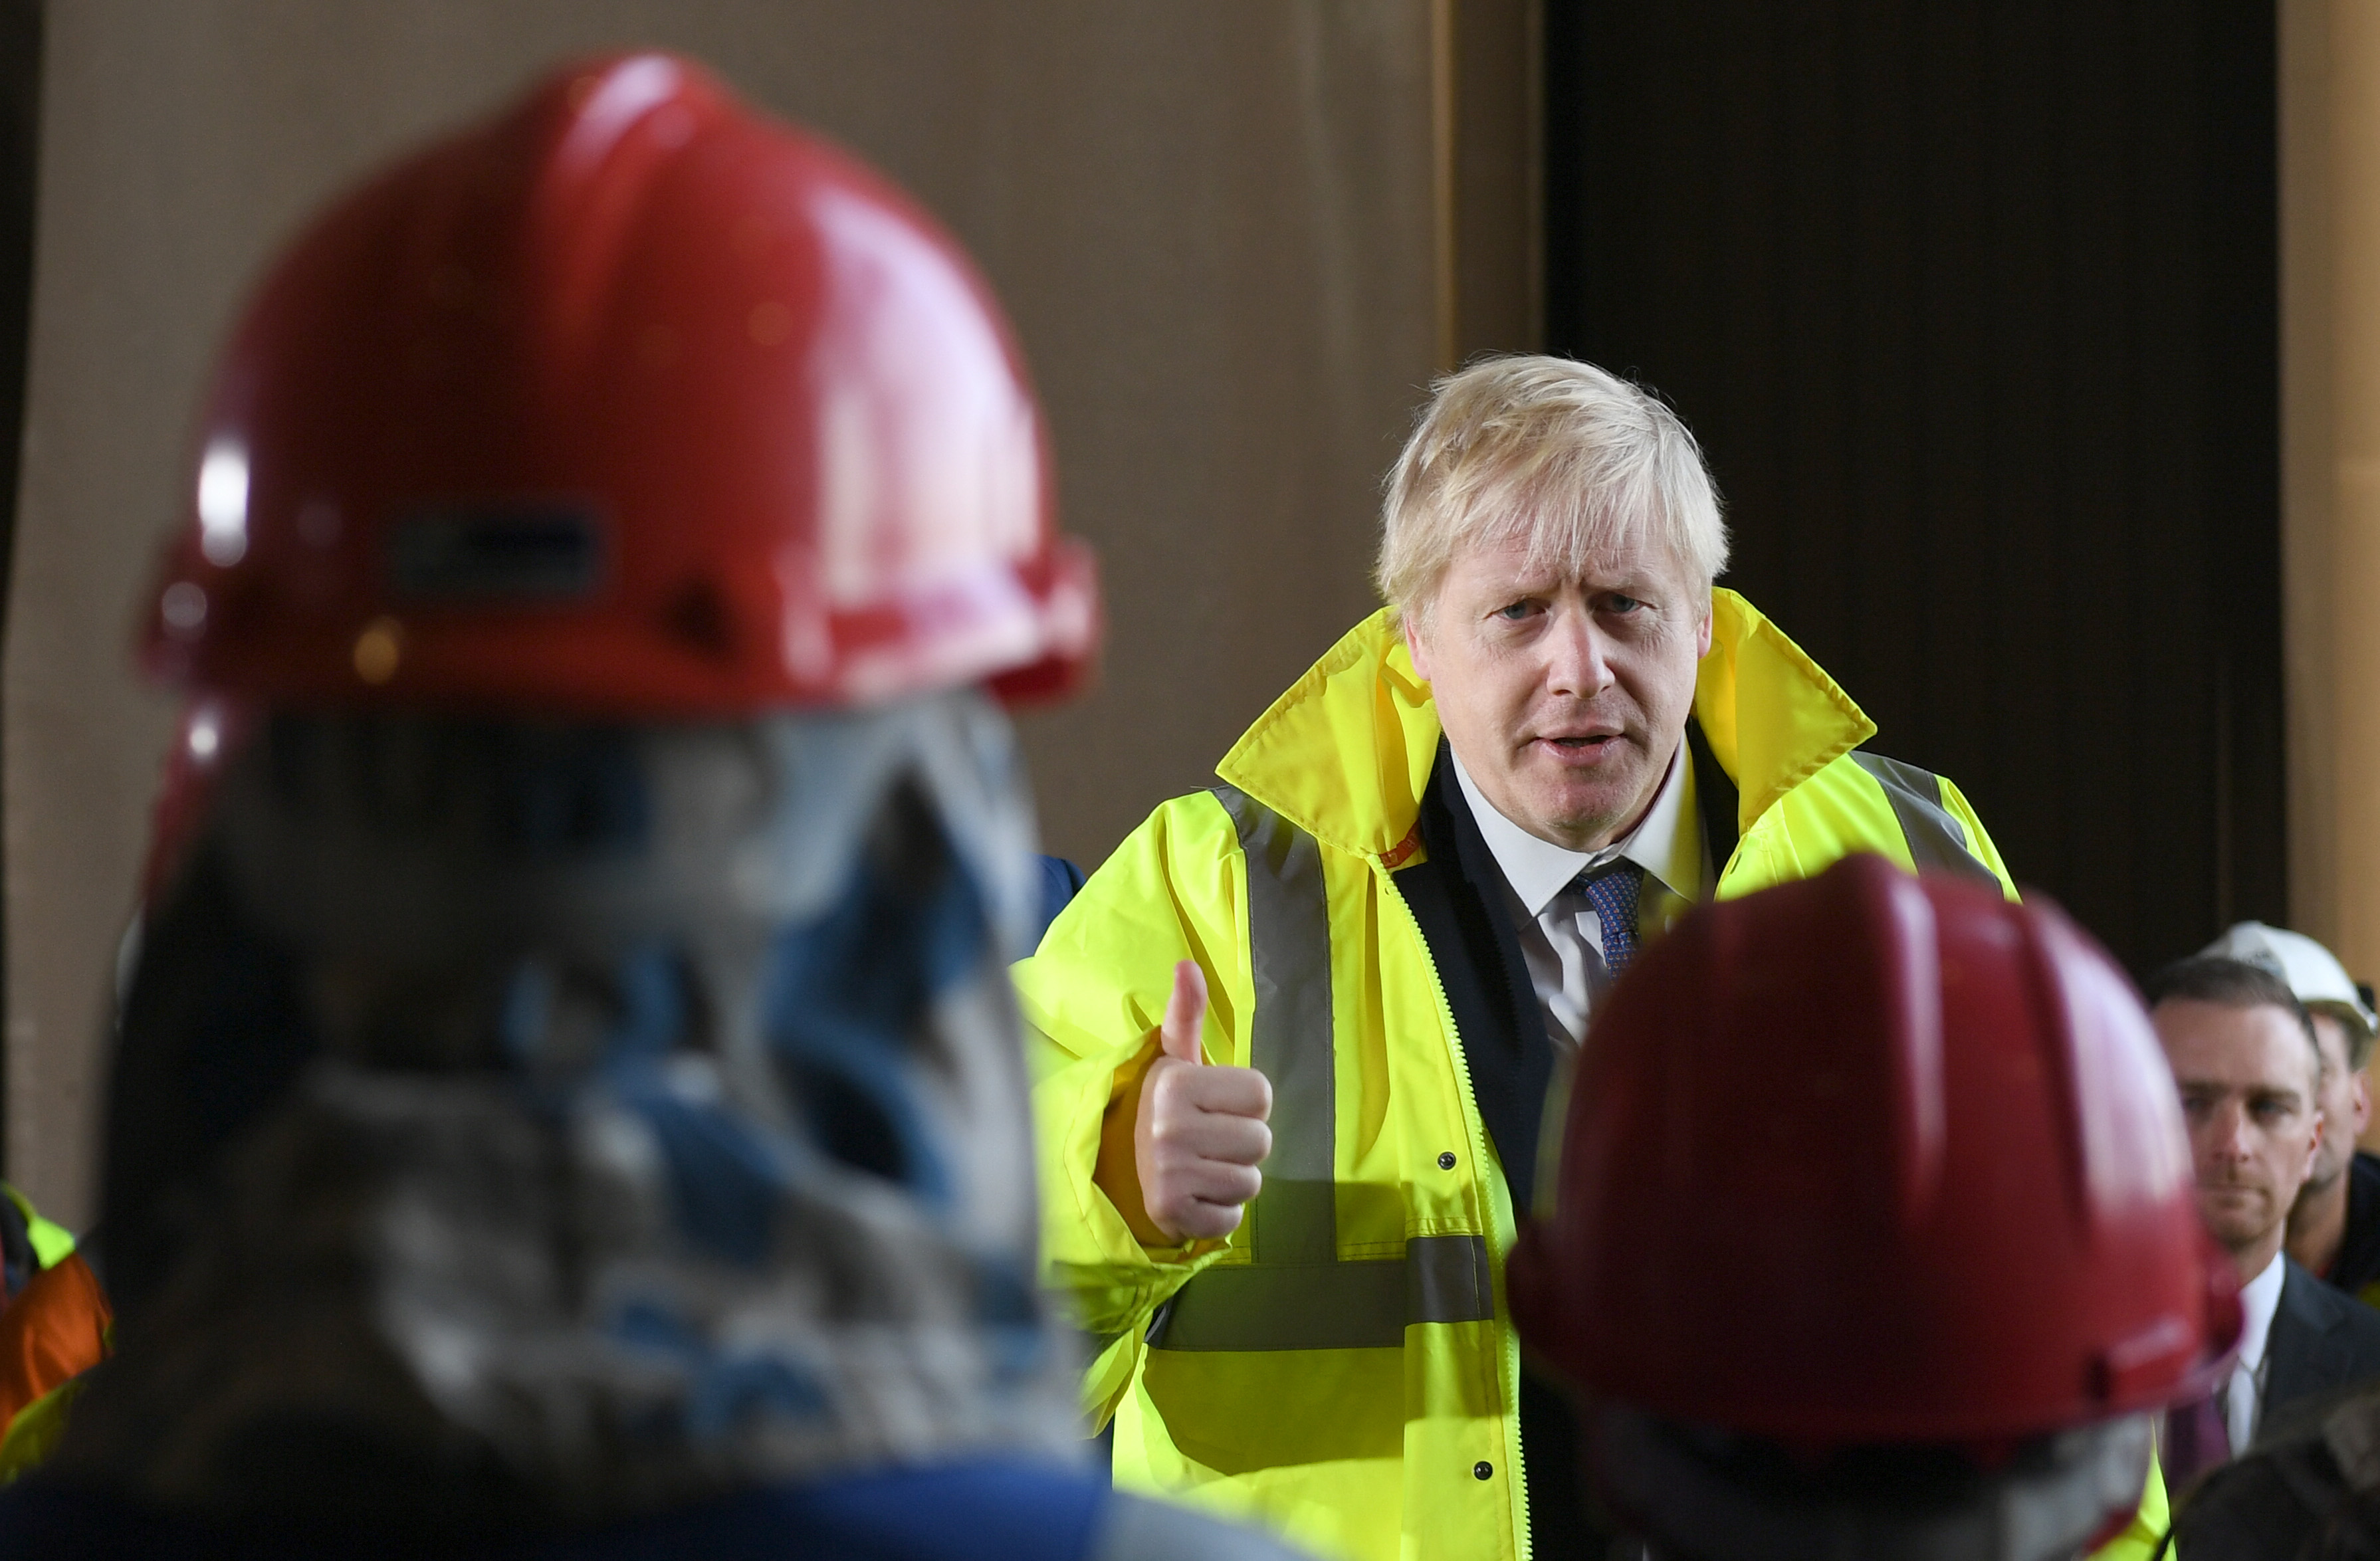 Prime Minister Boris Johnson visiting Wilton Engineering Services in Middlesbrough while on the campaign trail for the General Election.